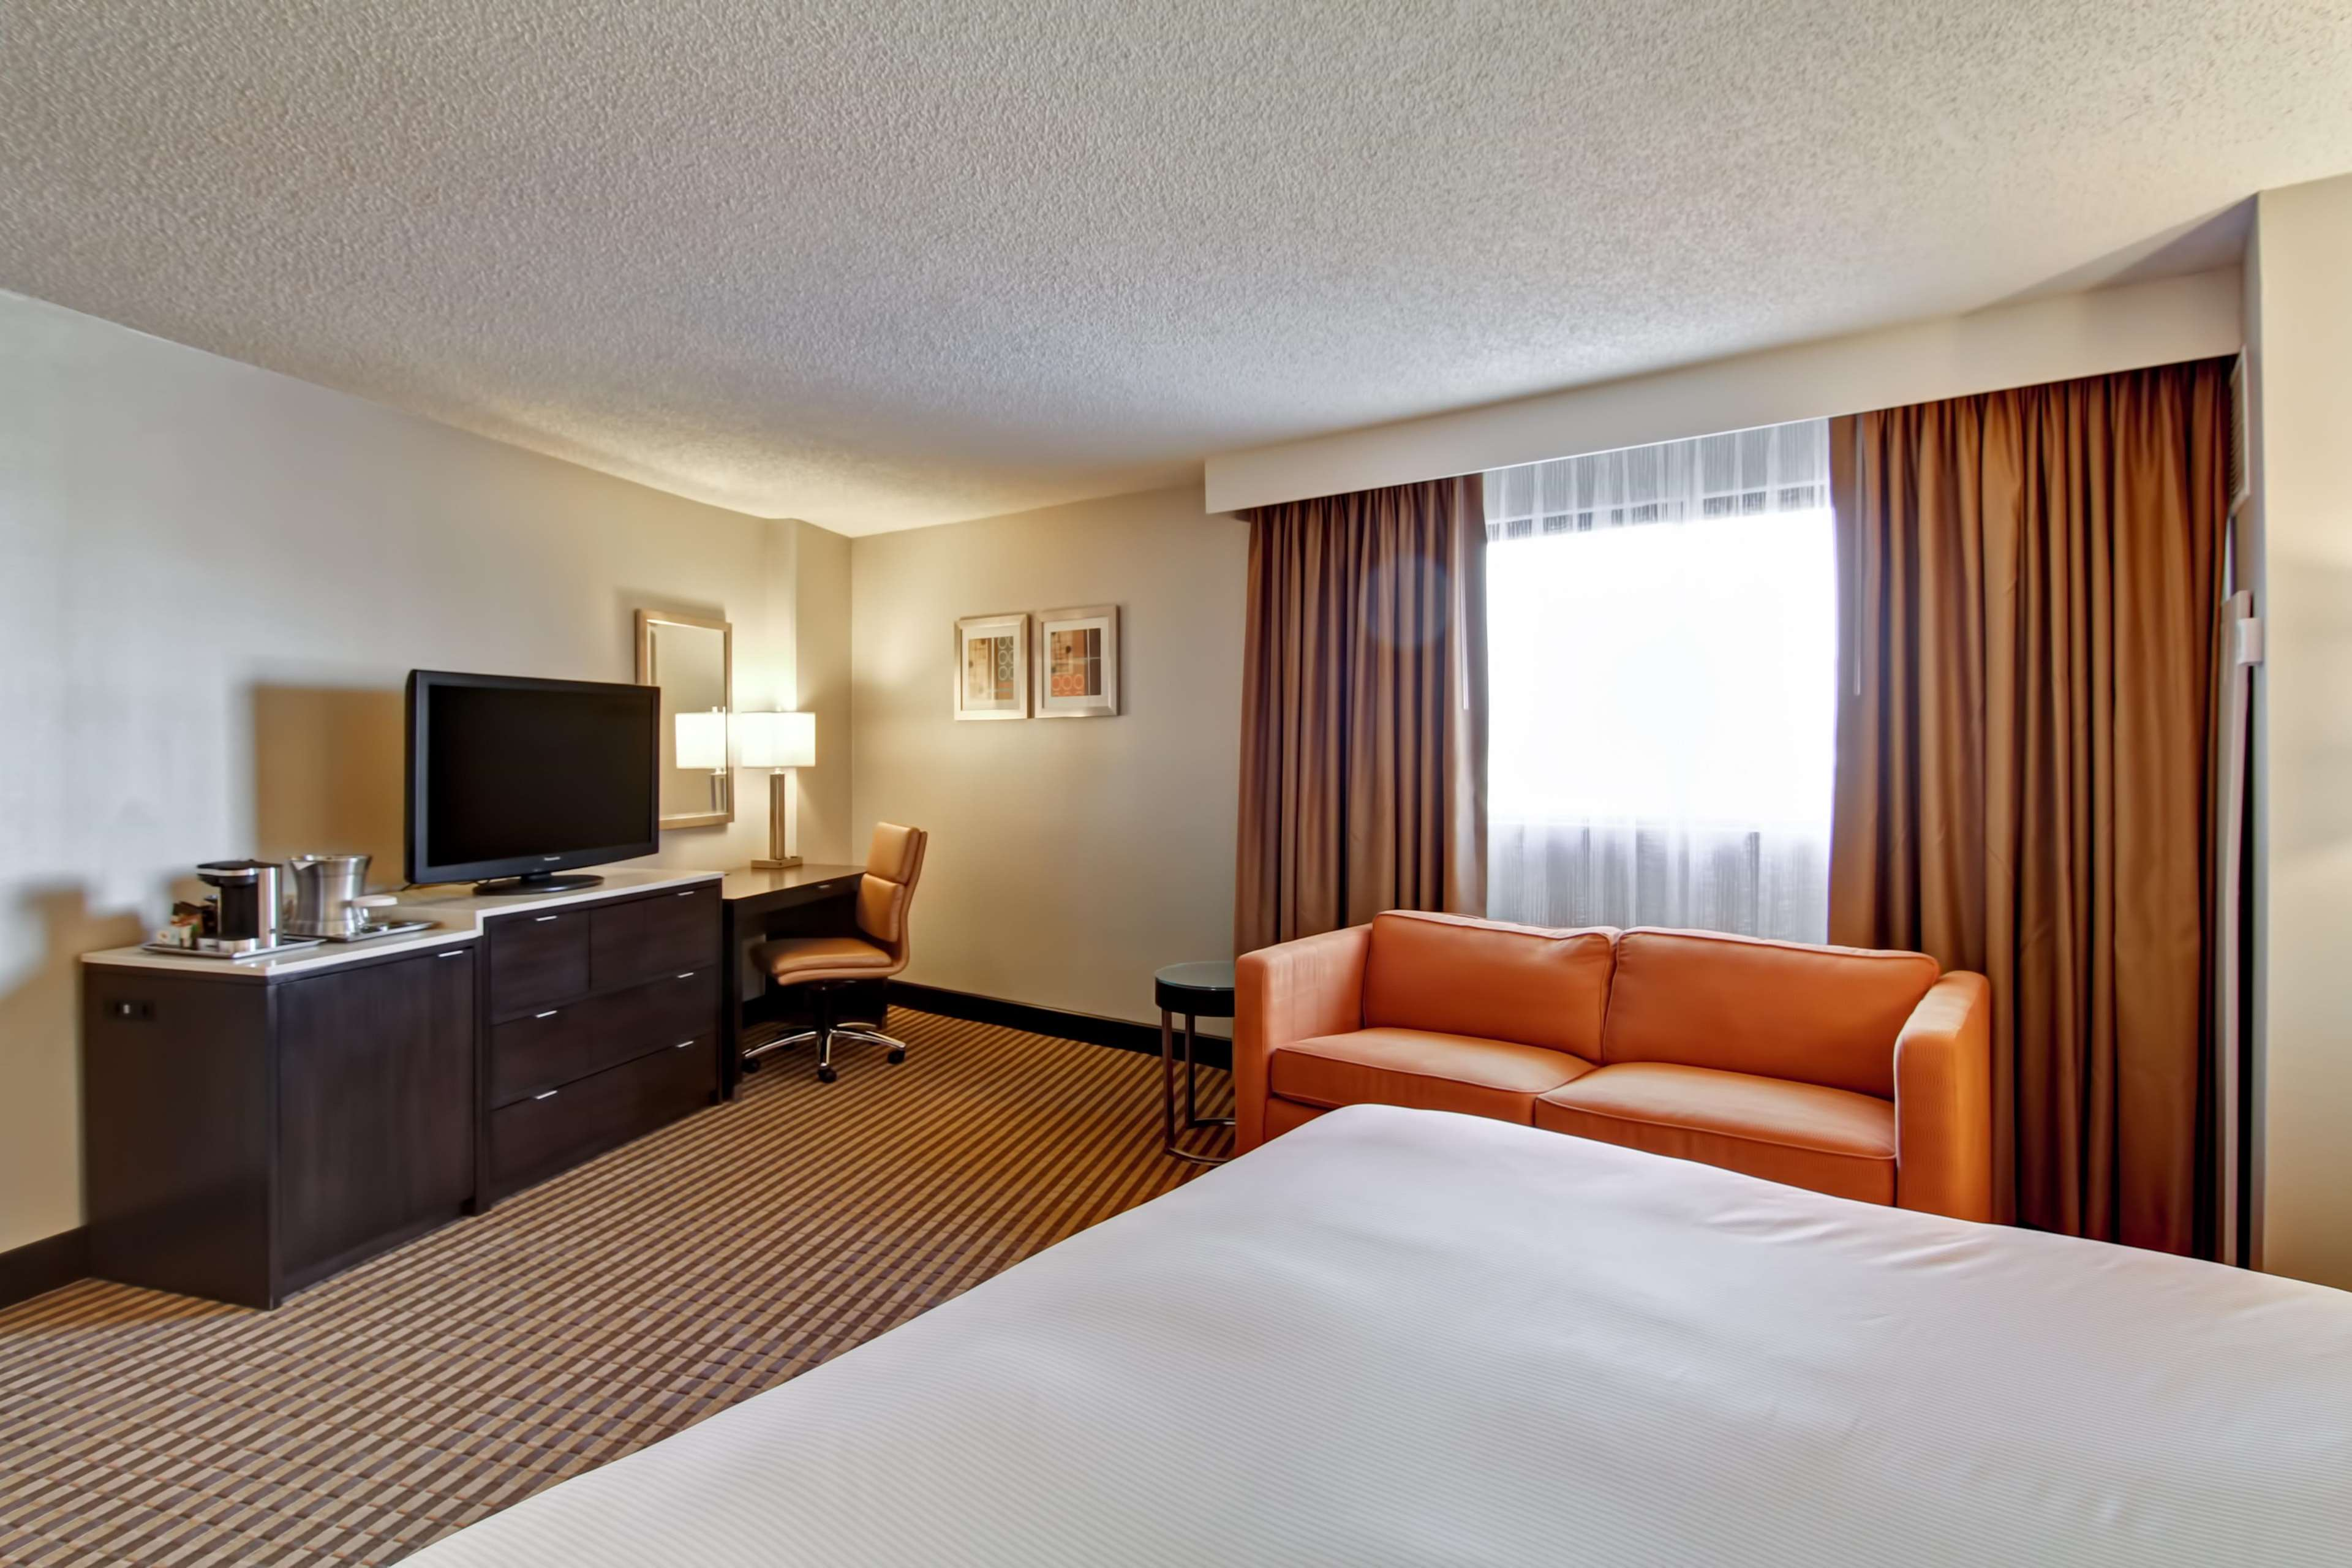 DoubleTree by Hilton Hotel Pleasanton at the Club image 33